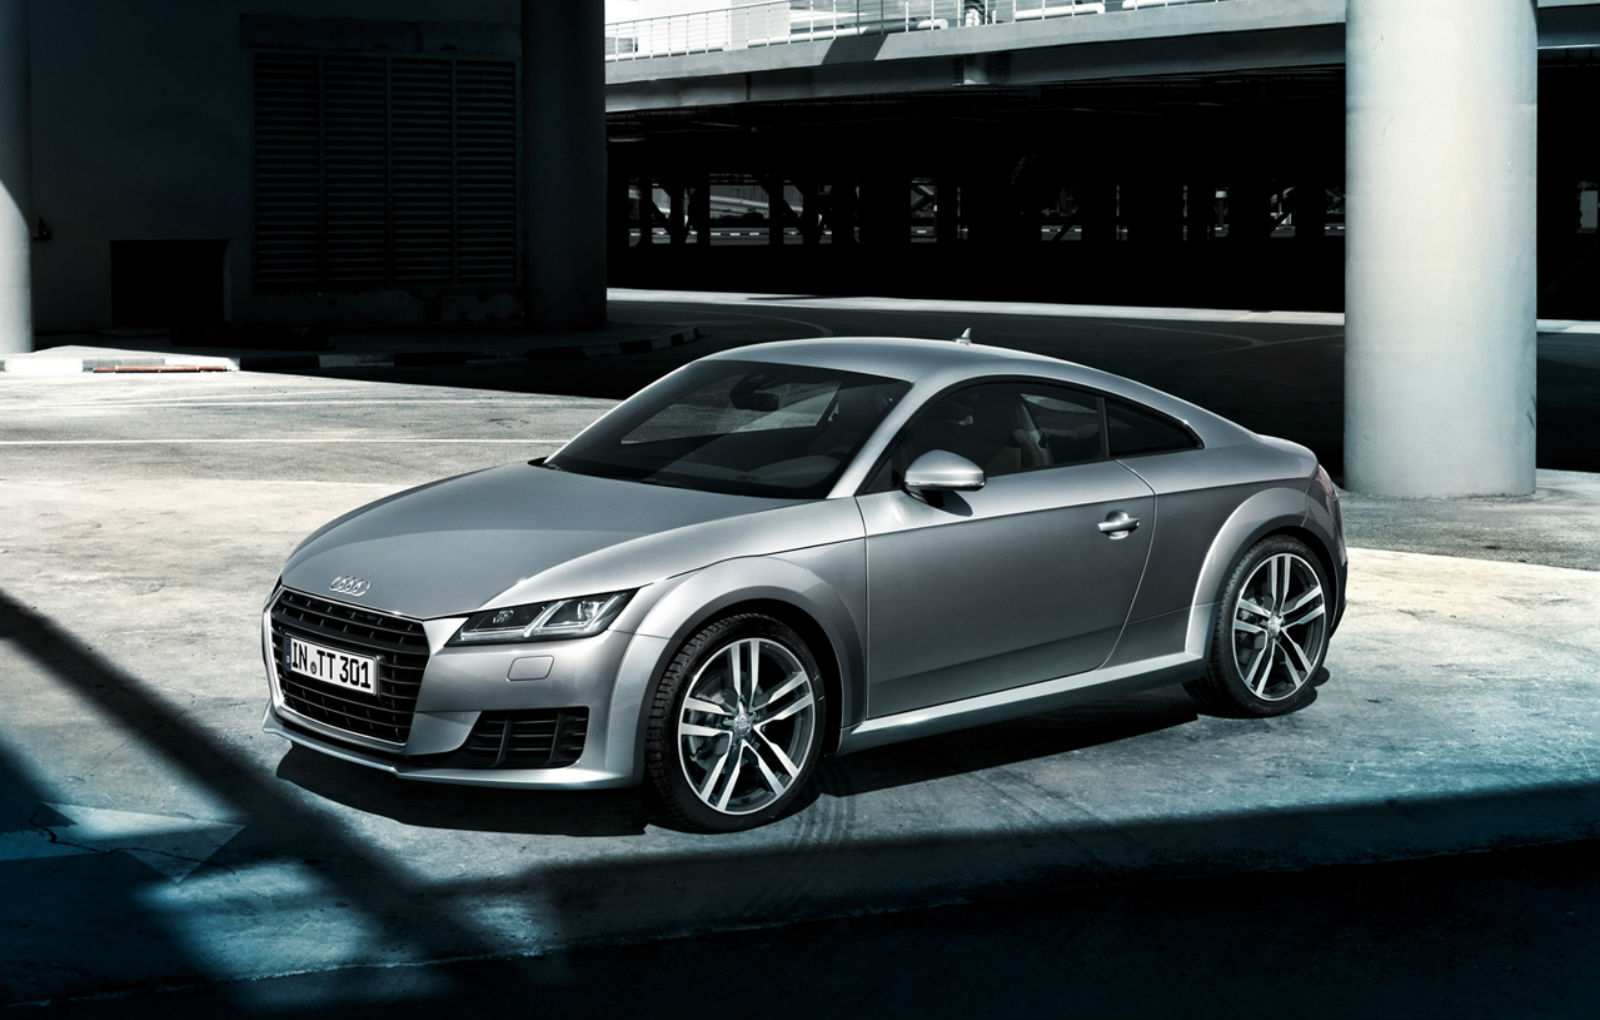 Audi Tt Wallpapers Hd Full Hd Pictures